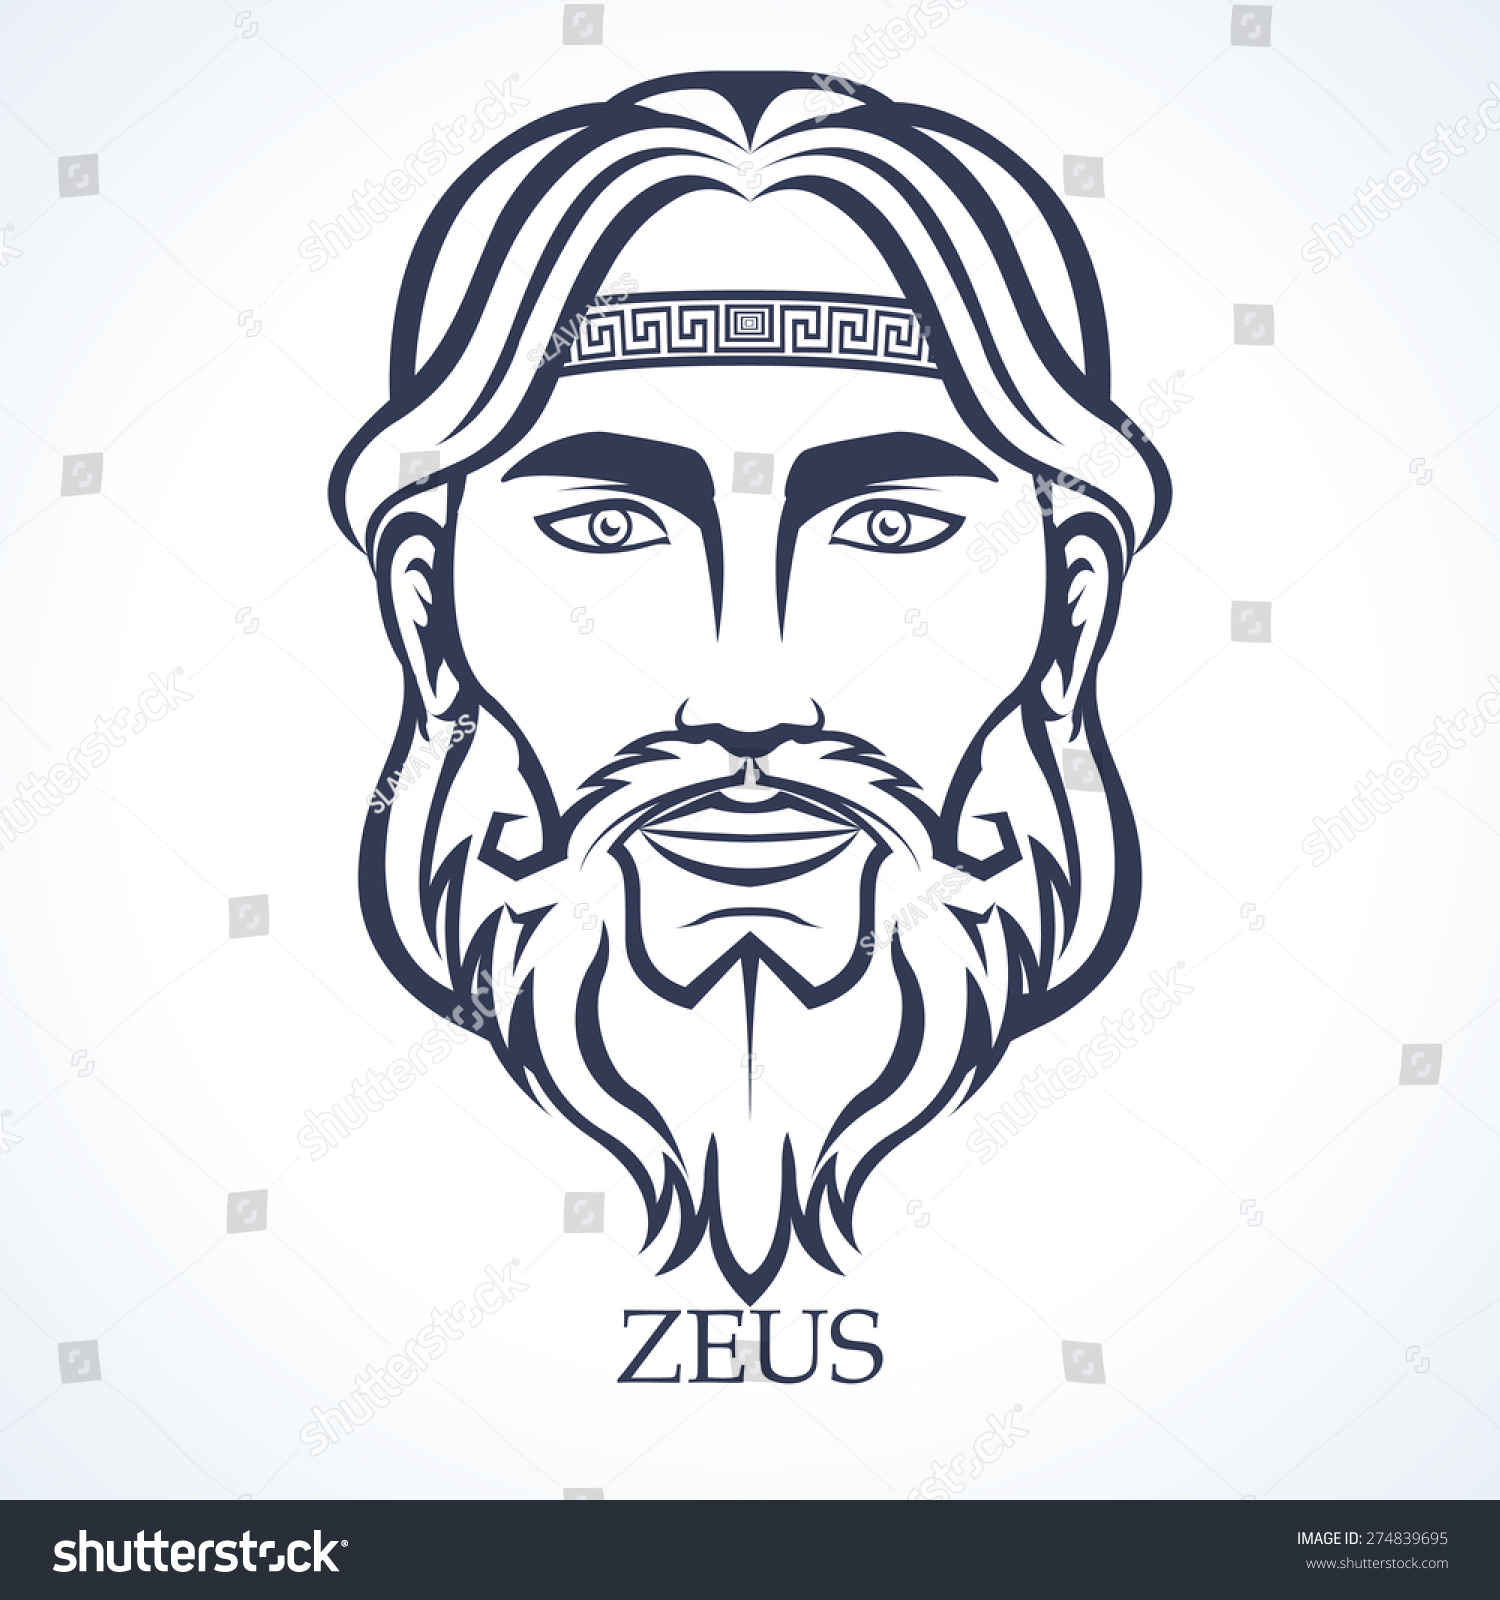 Zeus Drawing At Getdrawings Com Free For Personal Use Zeus